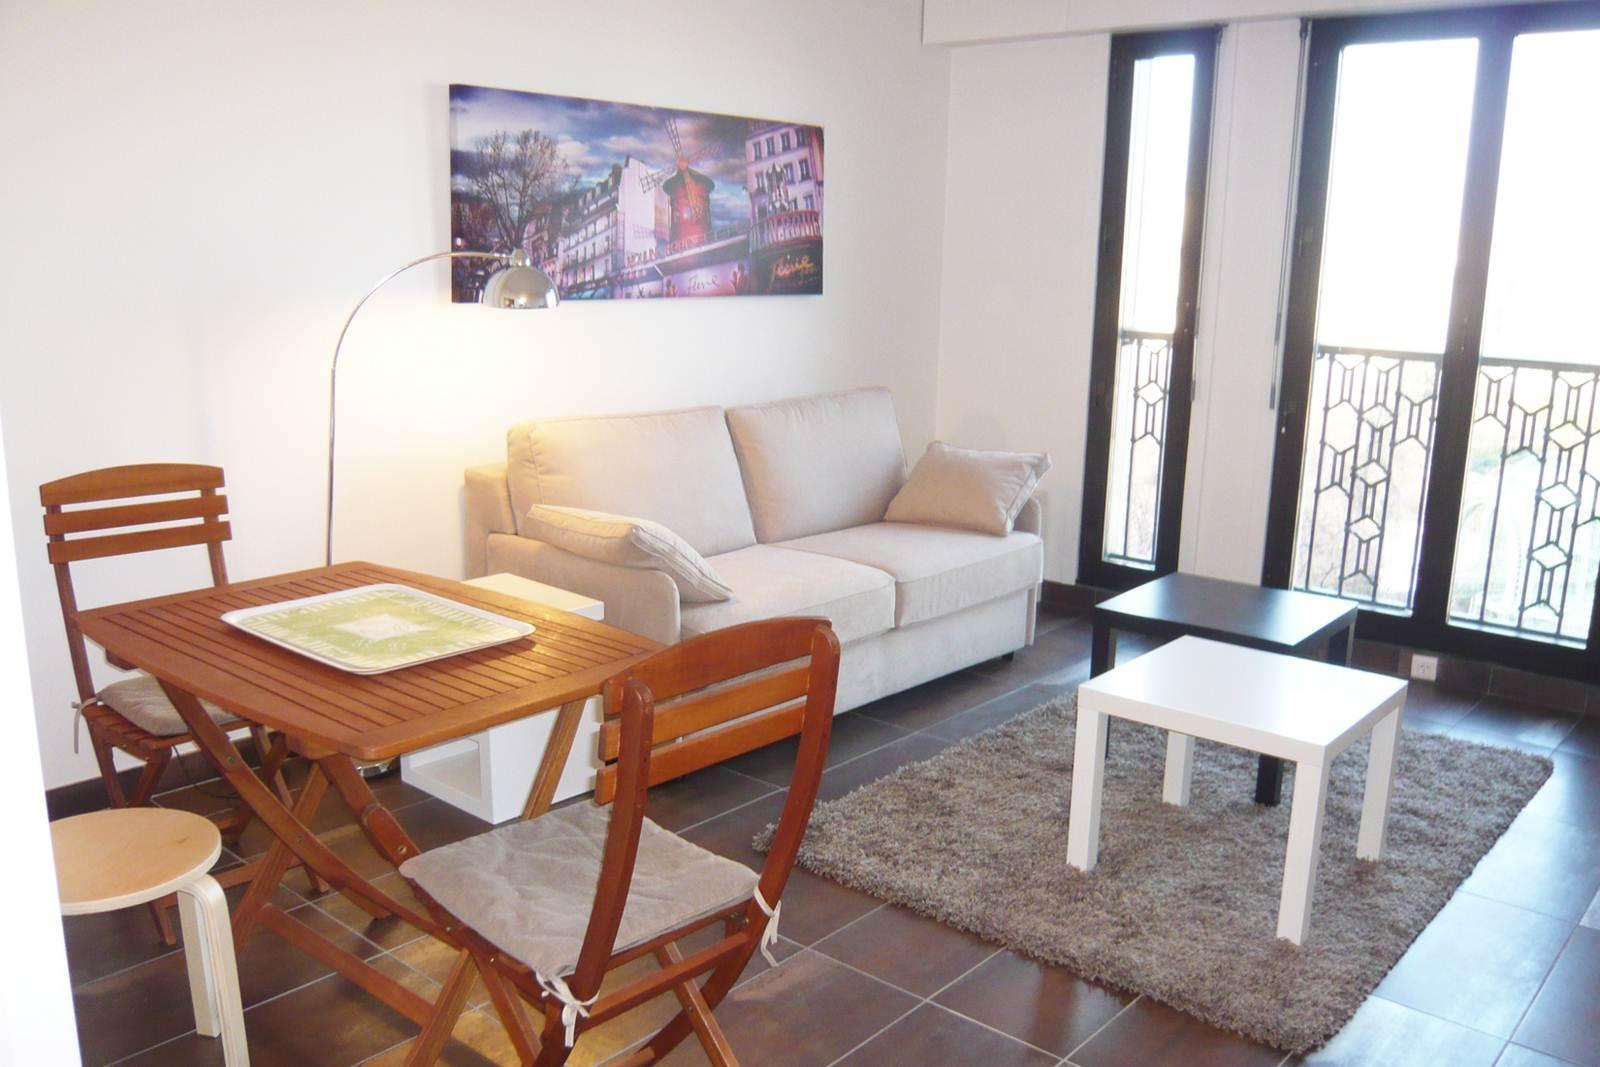 S01266 - Lovely studio with a stunning view, for 2 people next to Les Halles